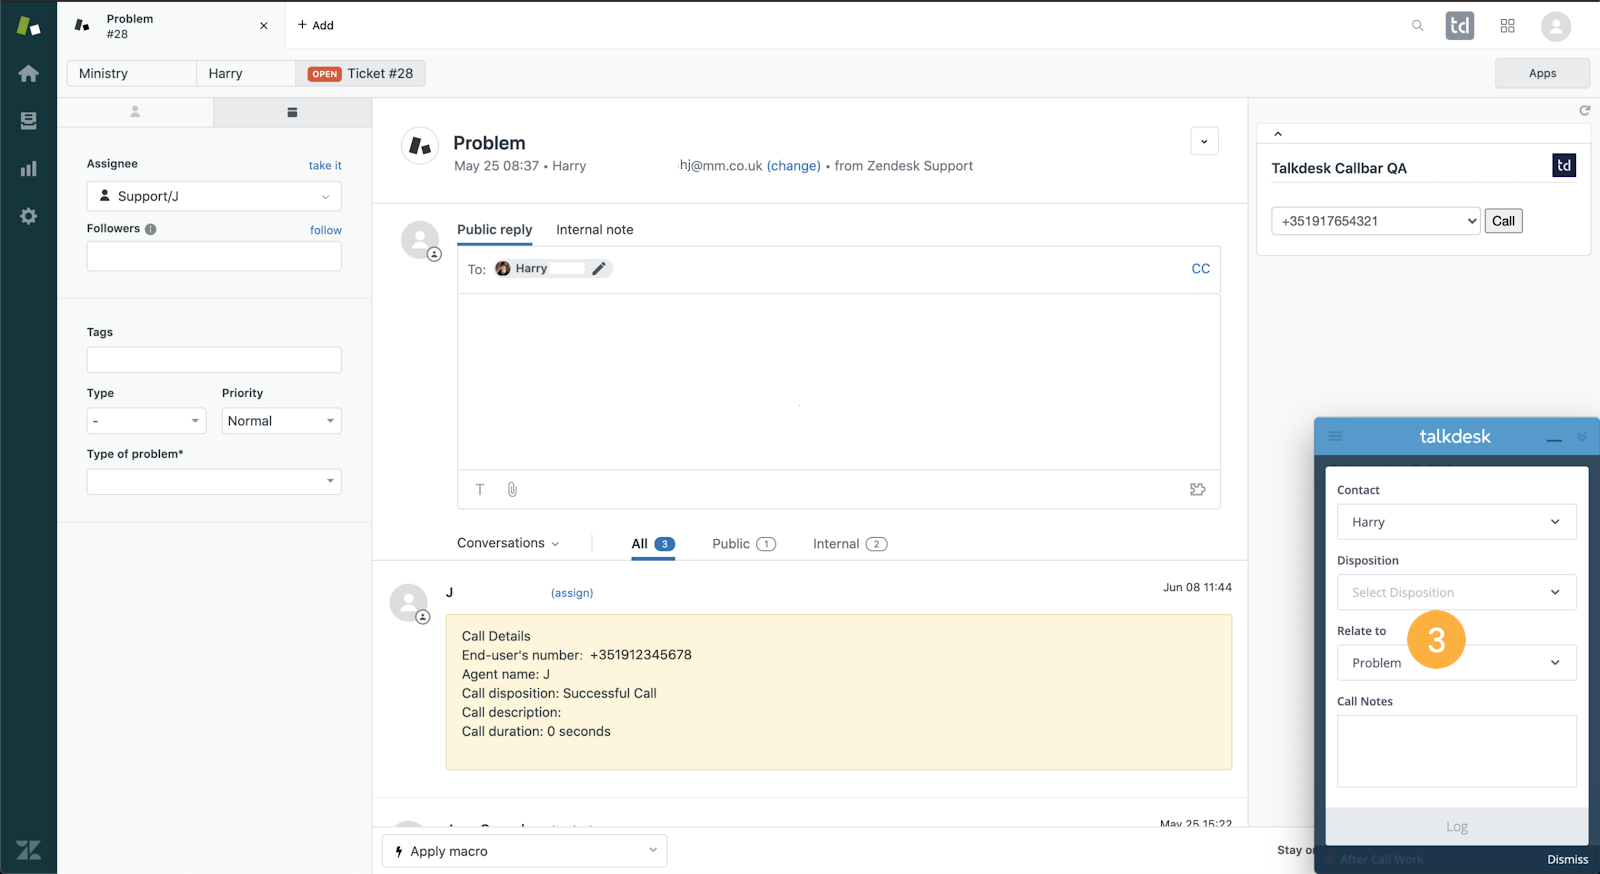 Zendesk-Relate-To-v1.5.png